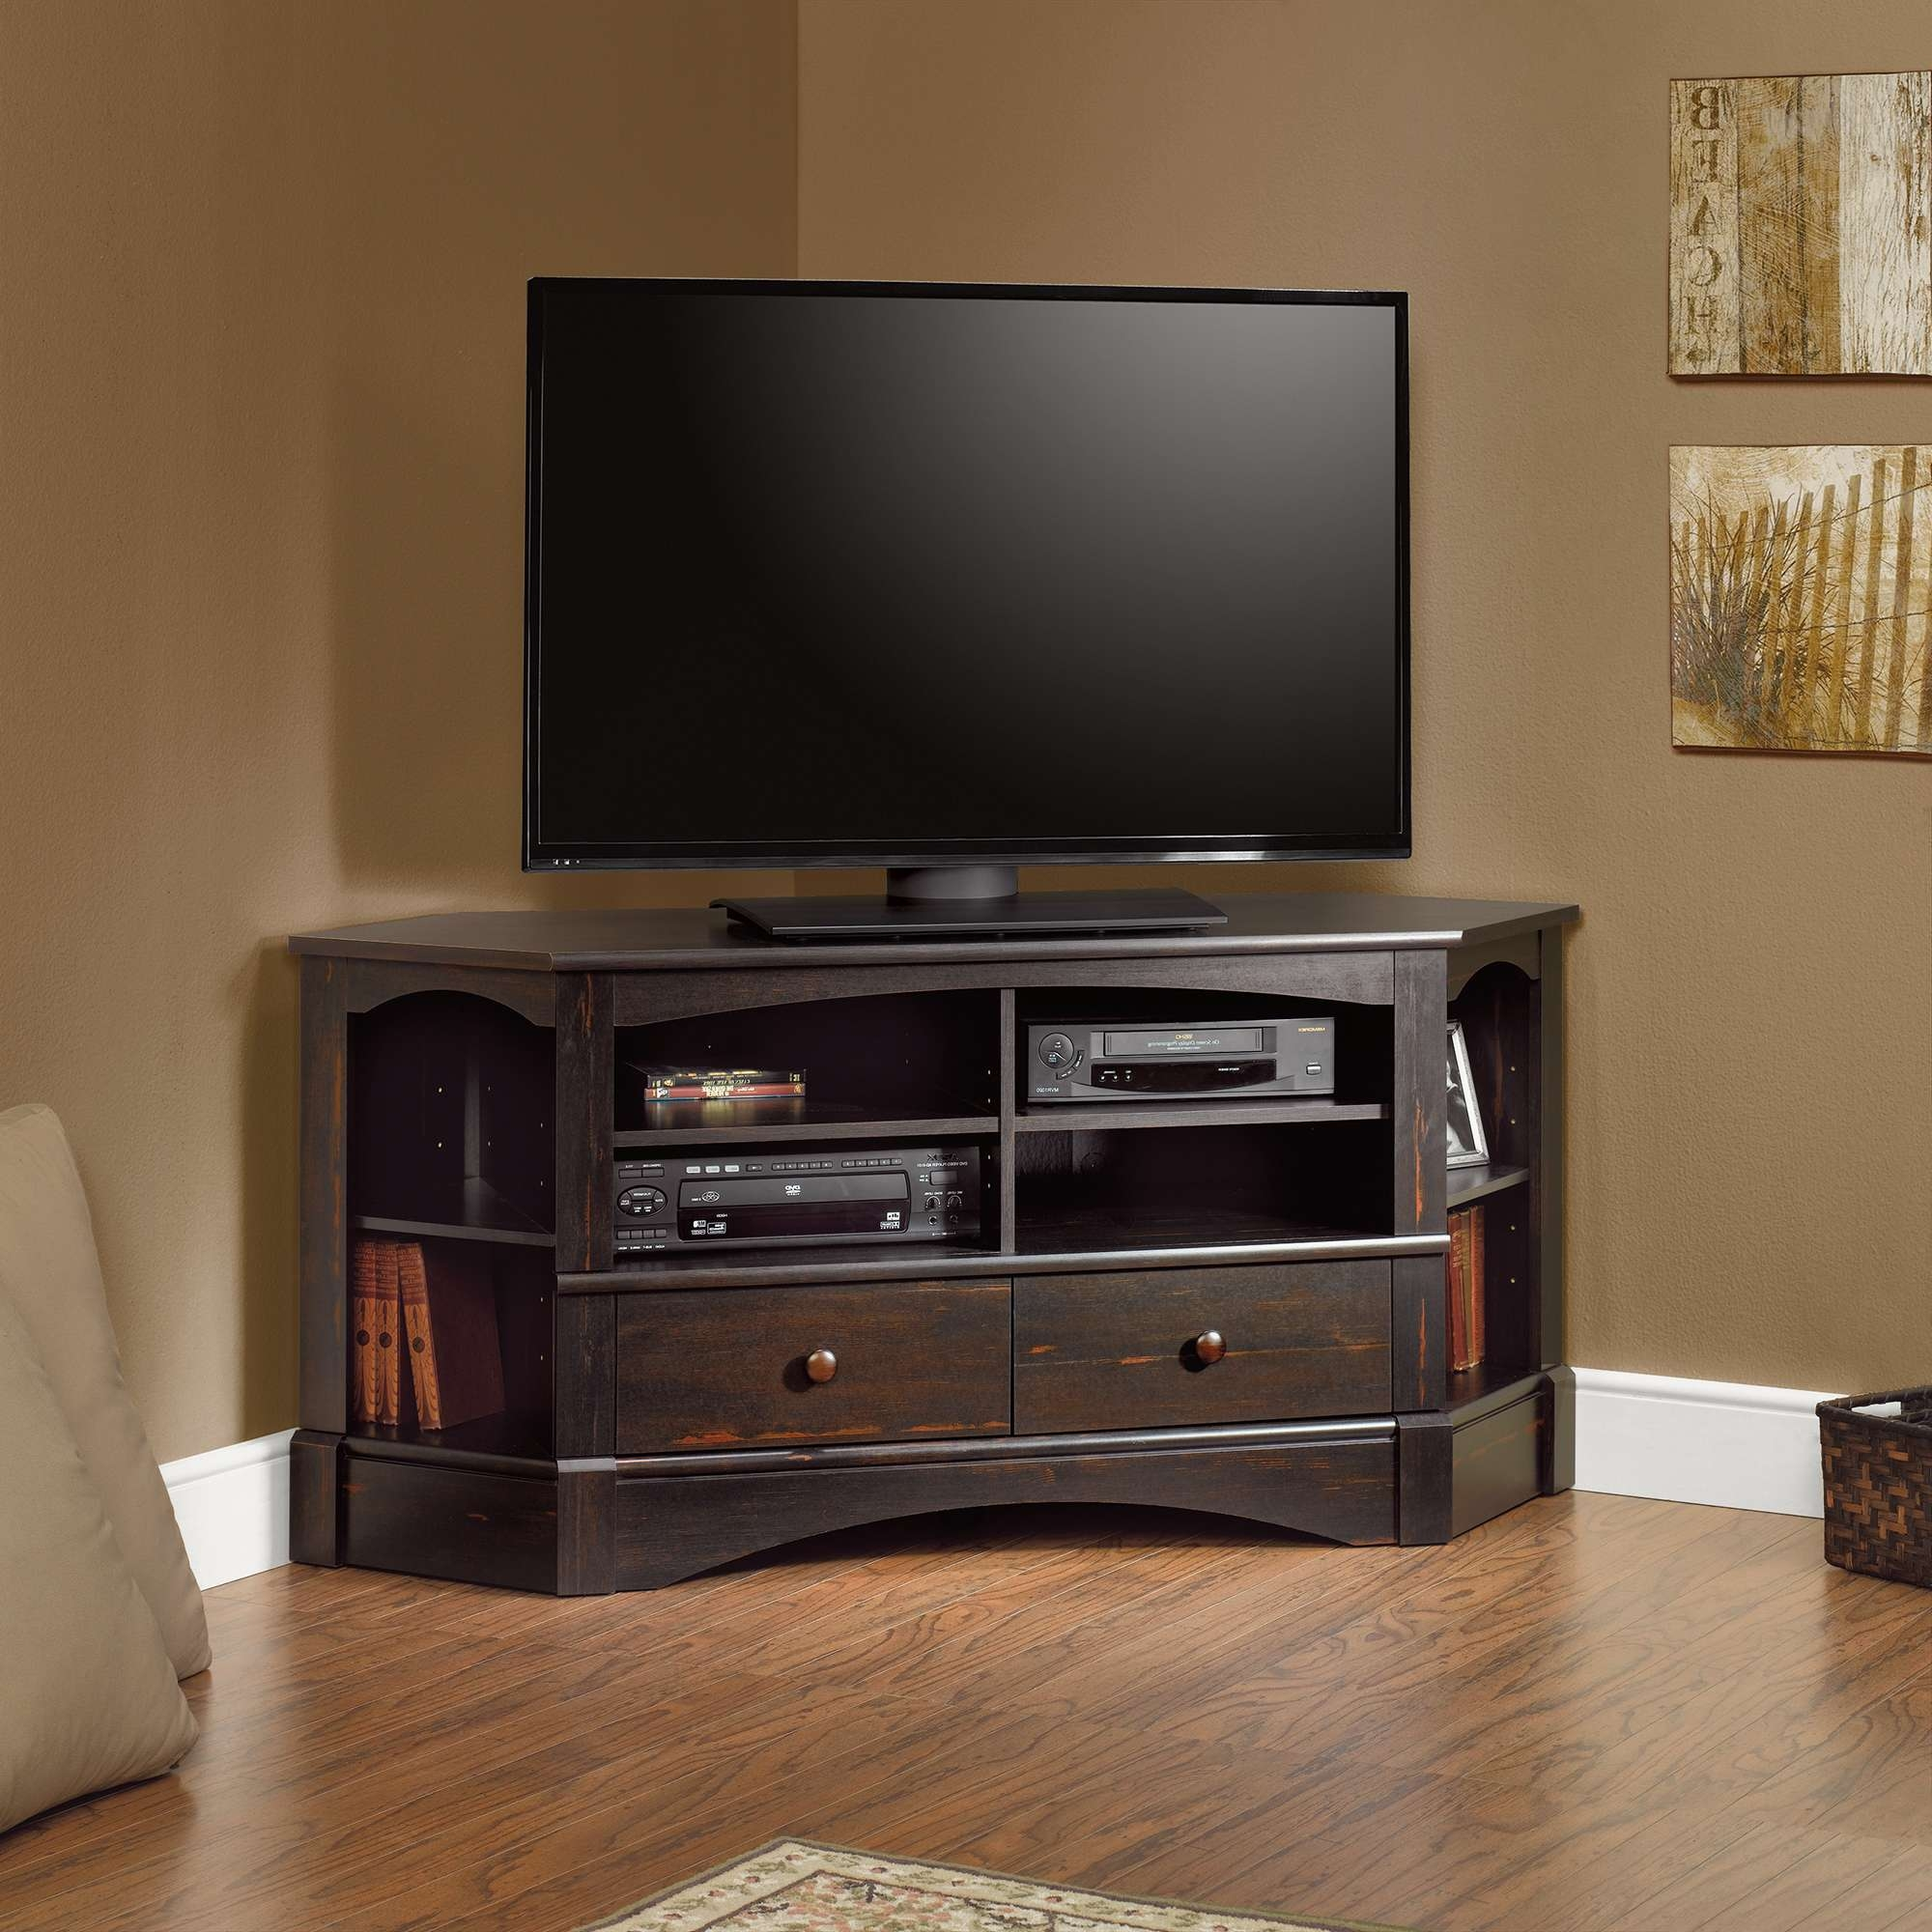 Harbor View | Corner Entertainment Credenza | 402902 | Sauder Intended For Wood Corner Tv Cabinets (View 9 of 20)